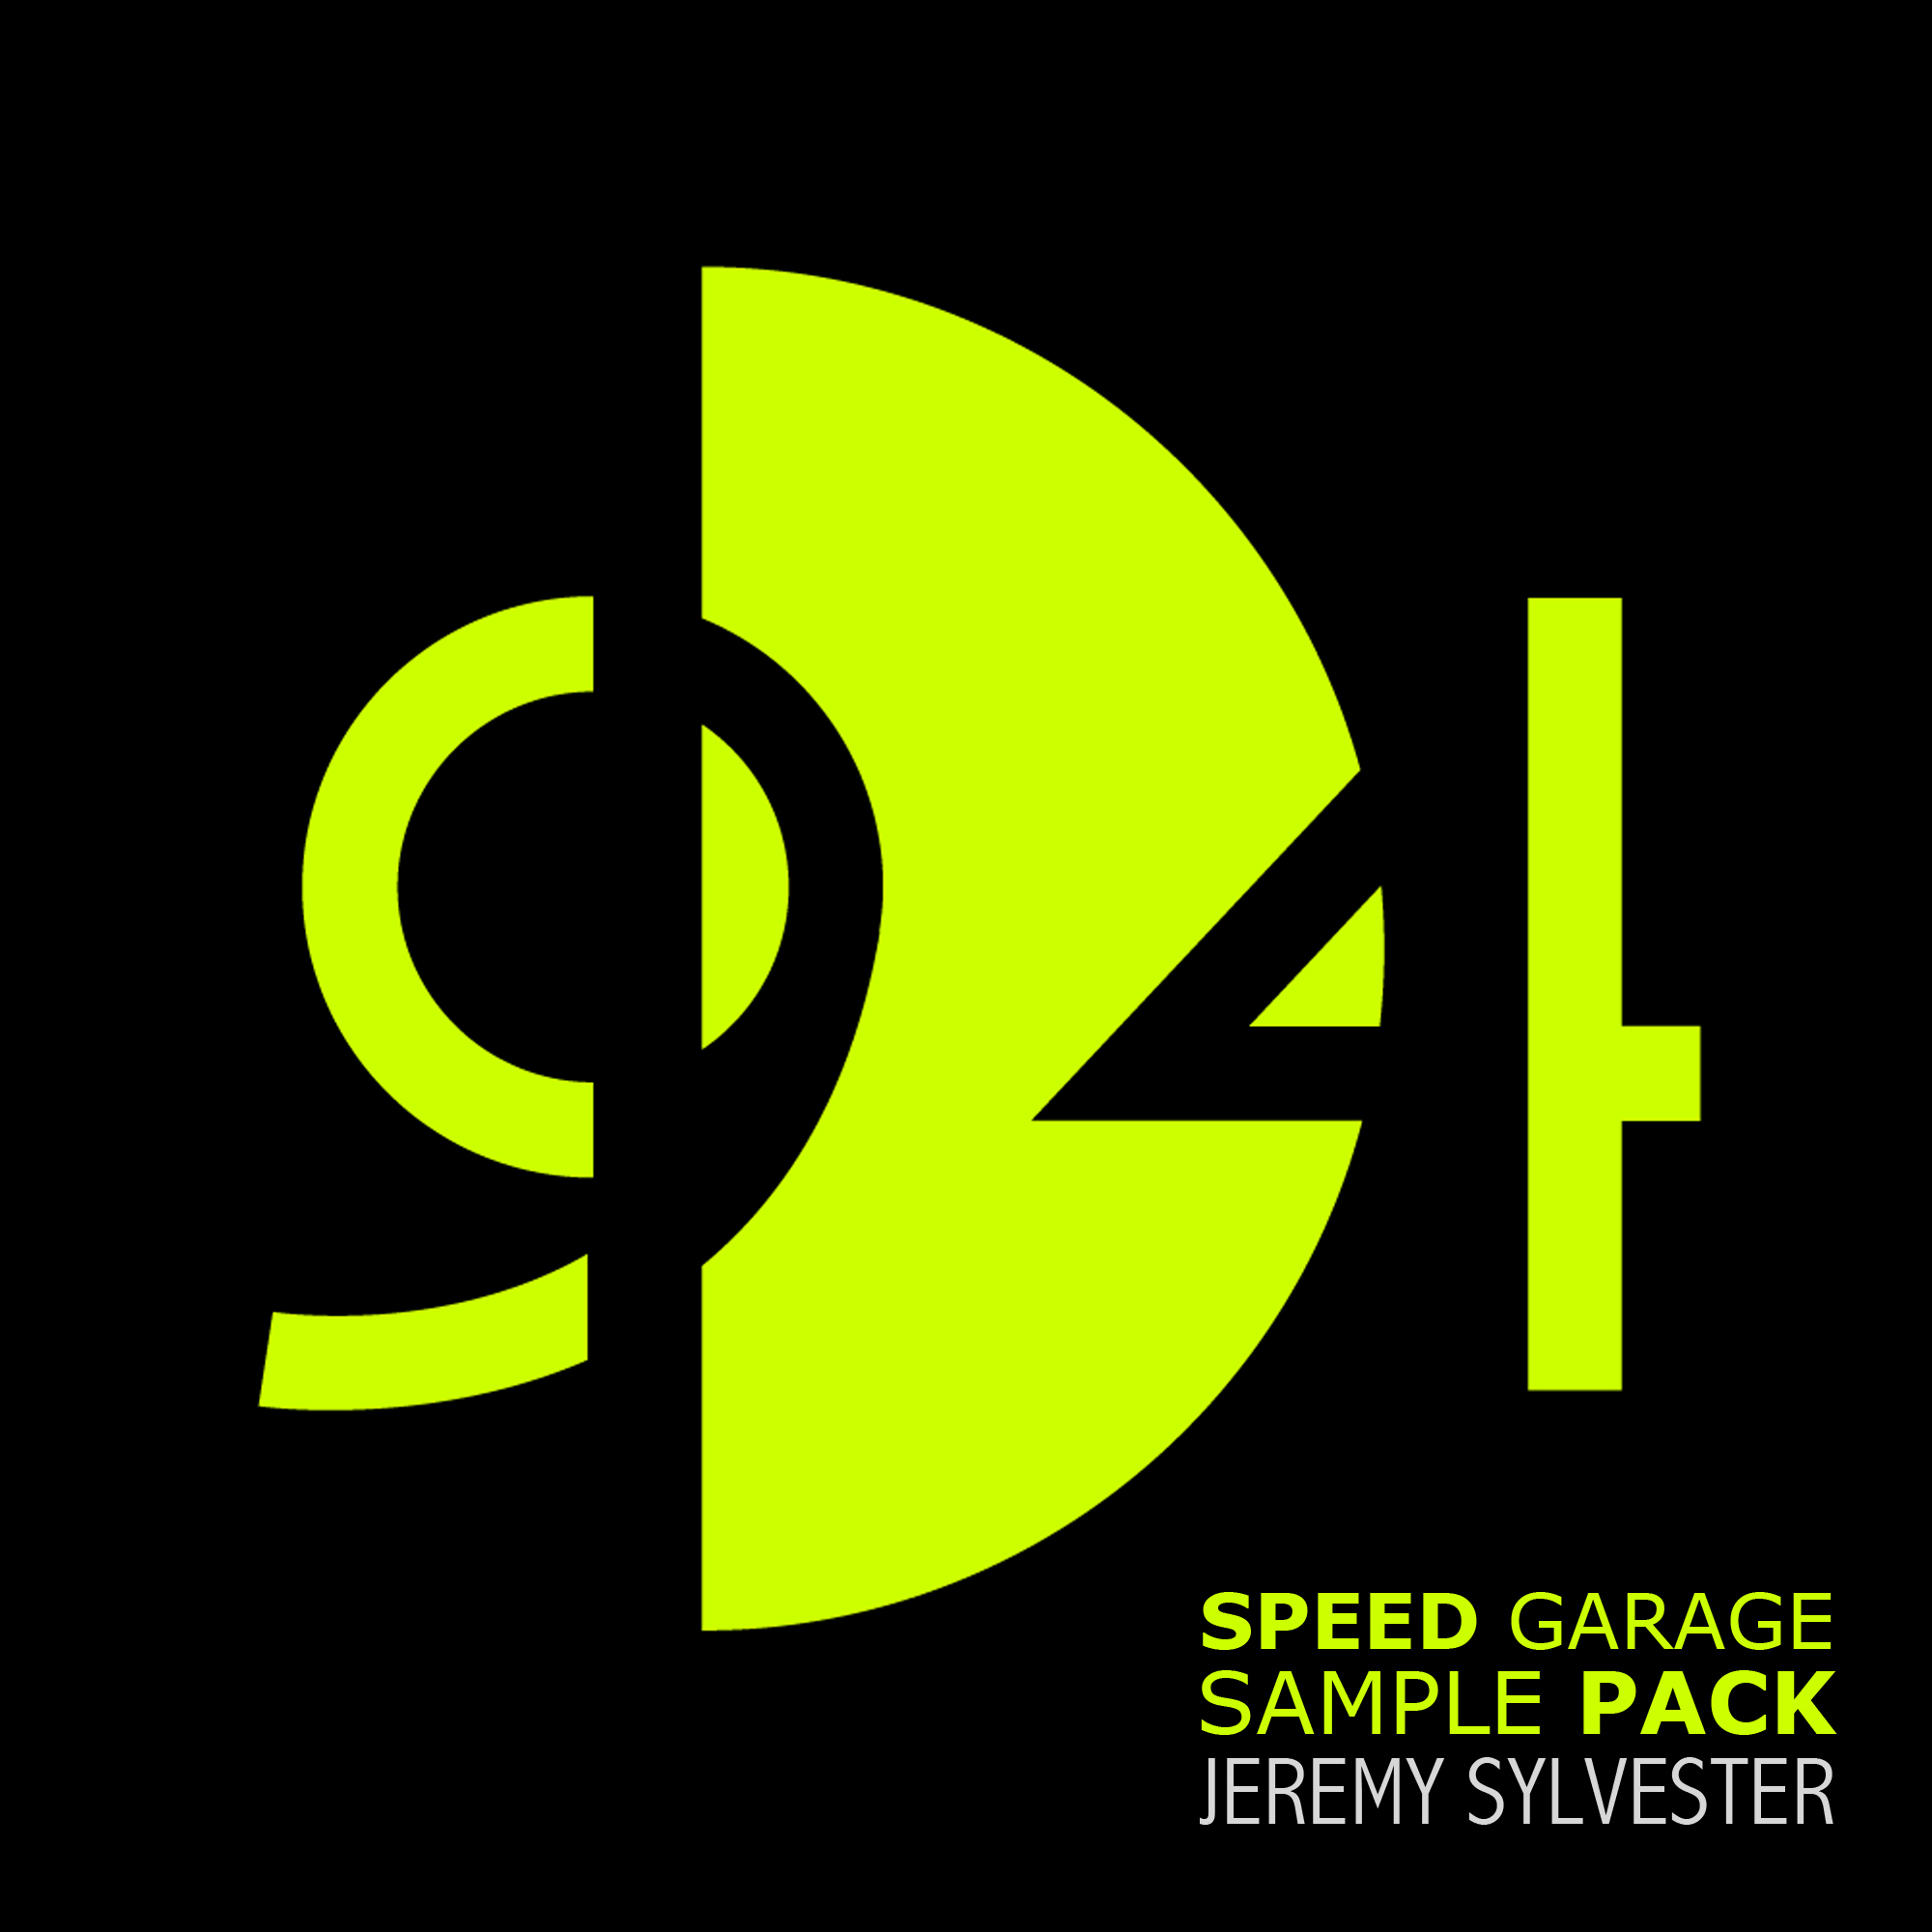 Kvr 9d4 speed garage sample pack by loop wax one shots for Future garage sample pack